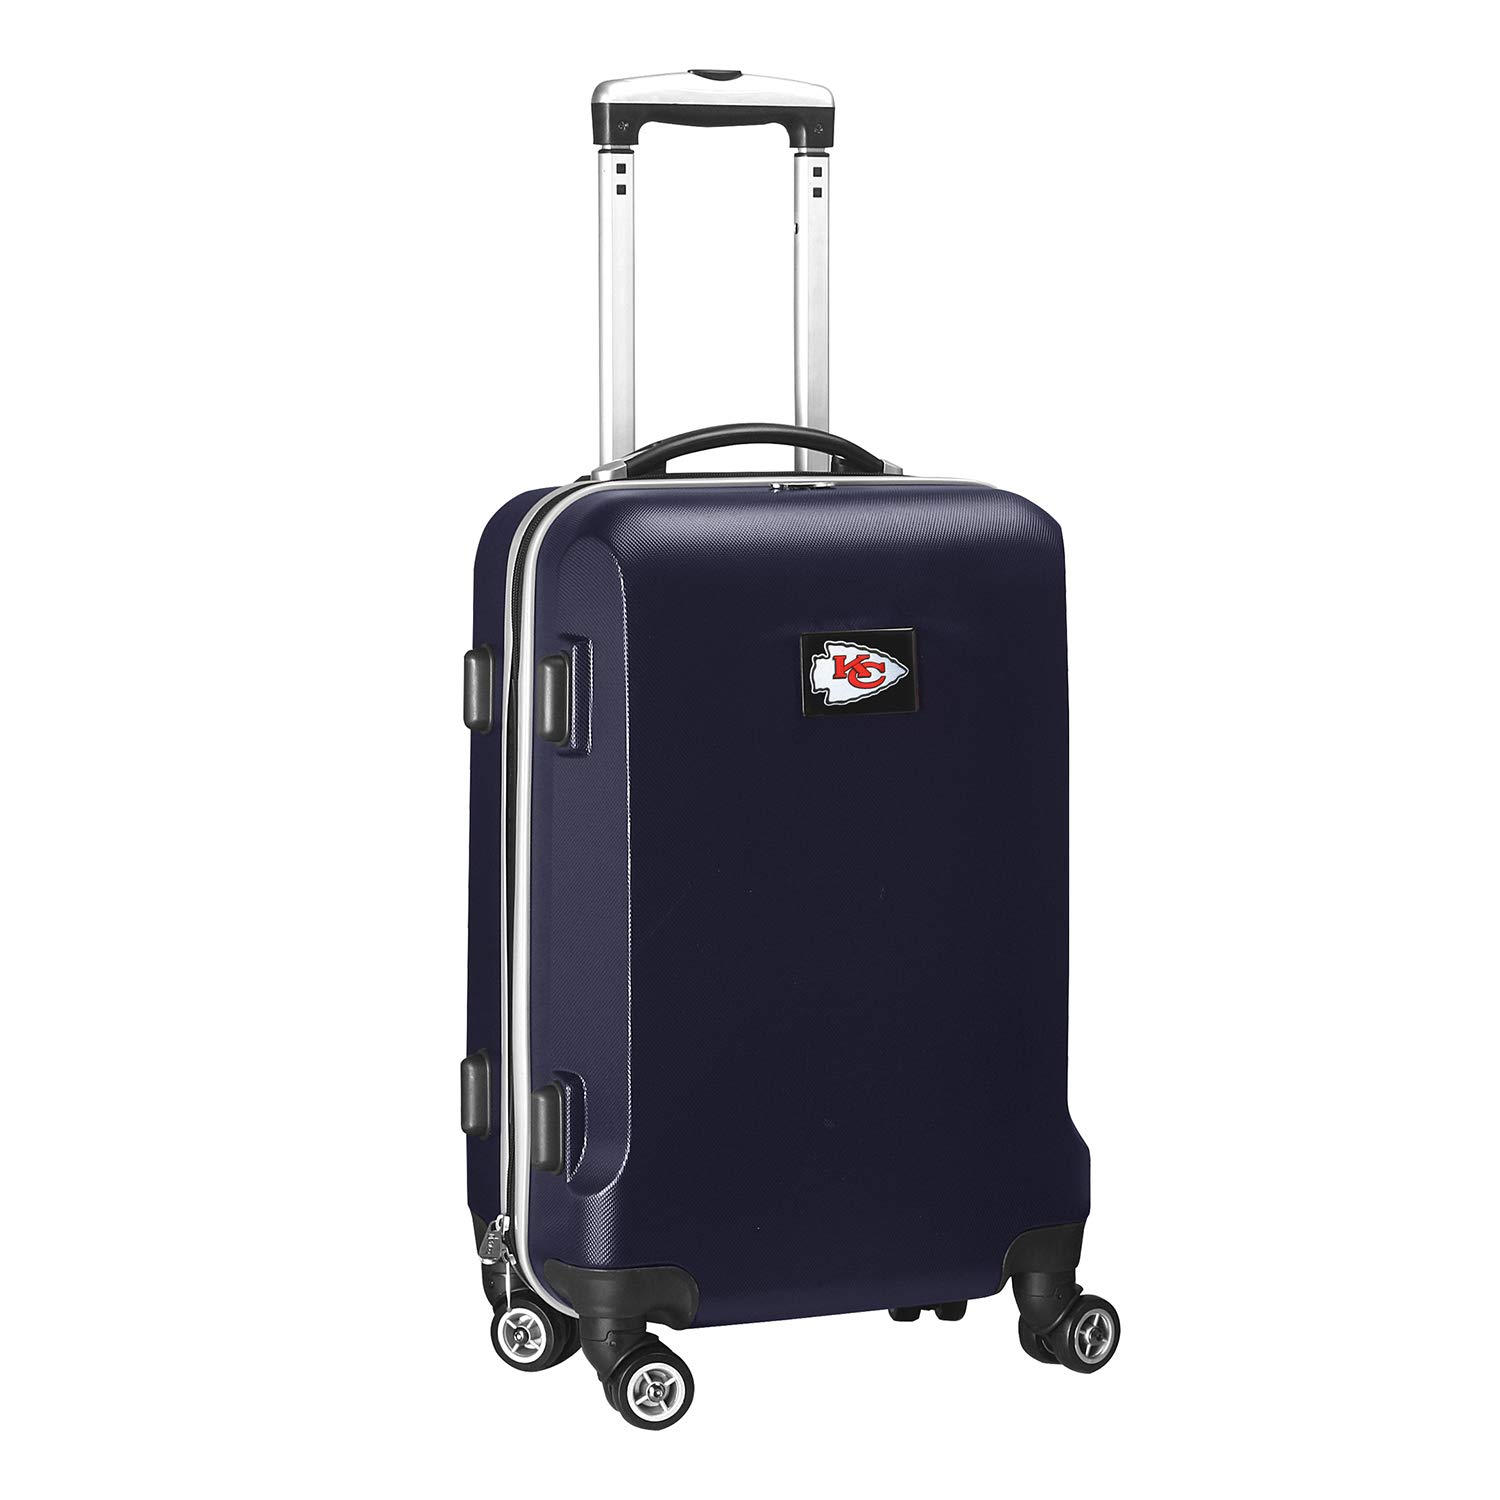 Denco NFL Kansas City Chiefs Carry-On Hardcase Luggage Spinner, Navy